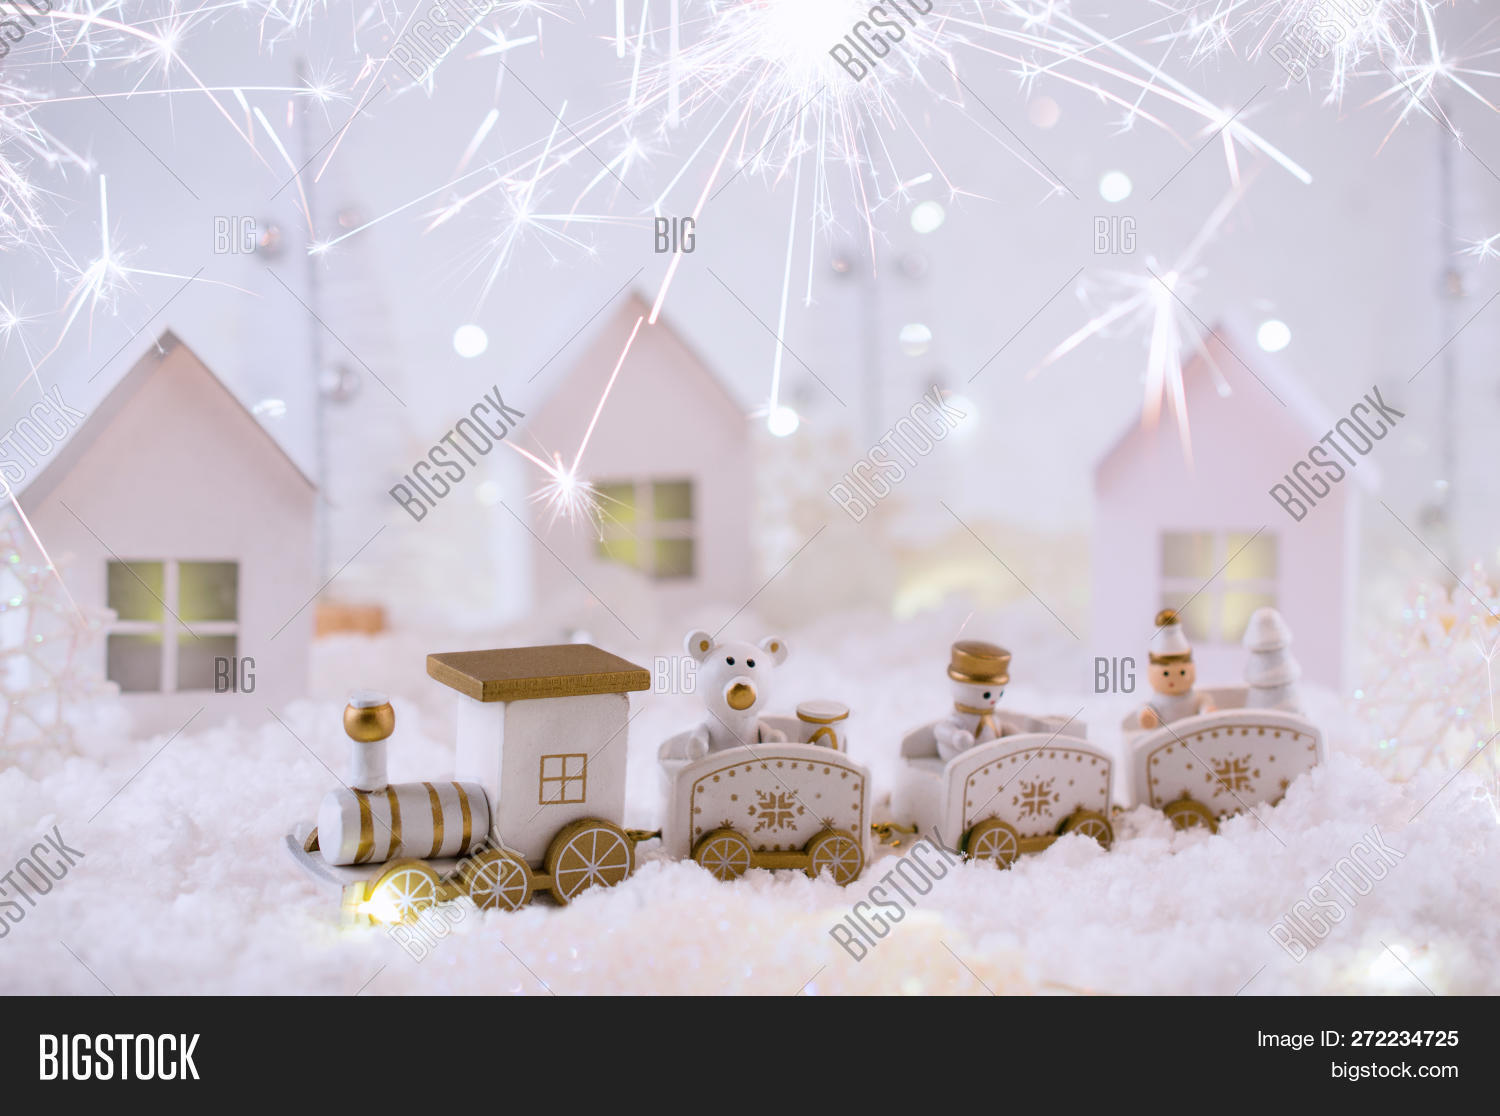 New Year Card Toy Image Photo Free Trial Bigstock